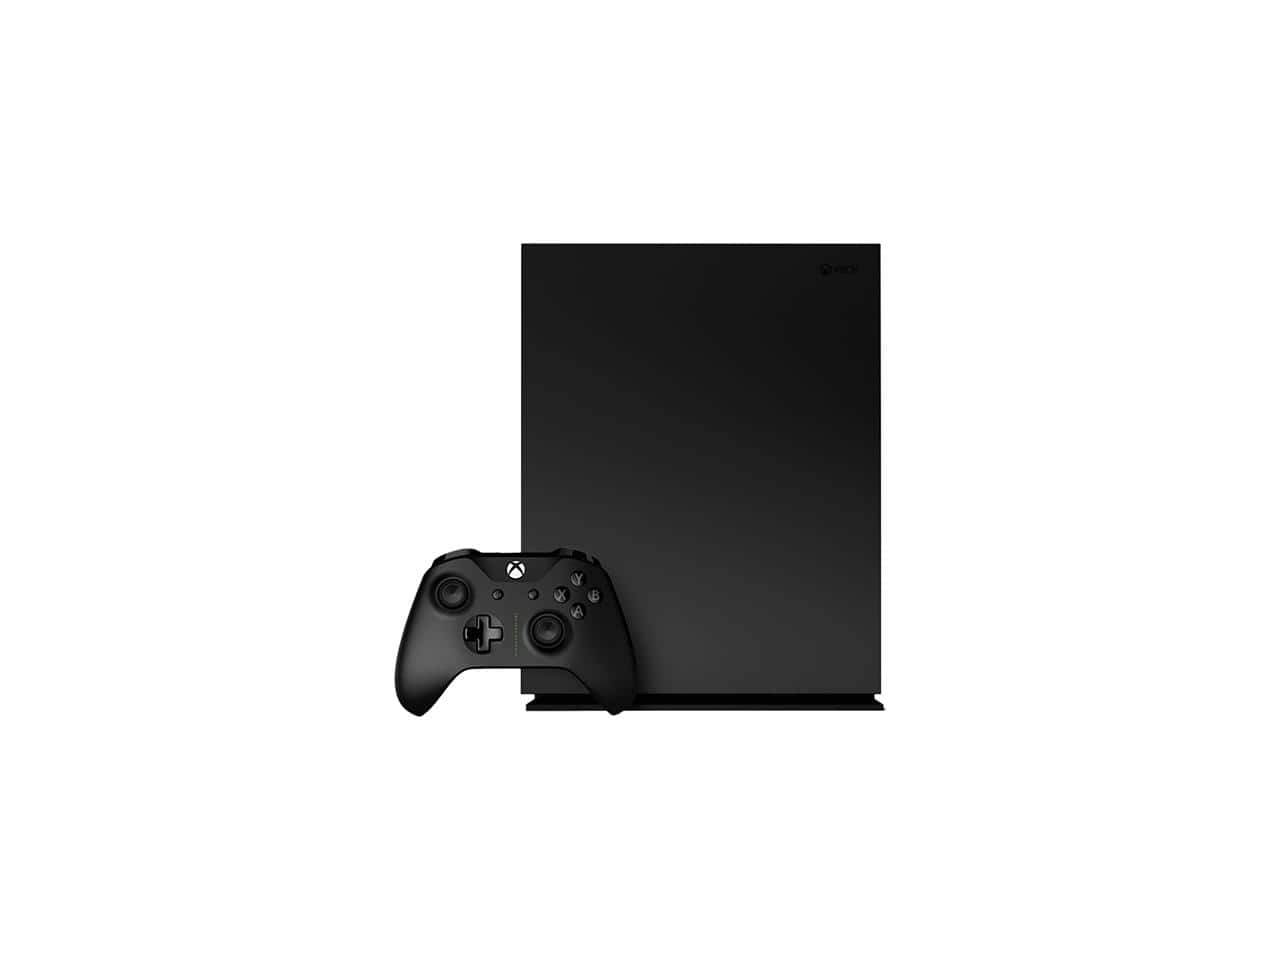 Xbox one X Project Scorpio Edition $499.00 + $5.99 S/H No Tax for most